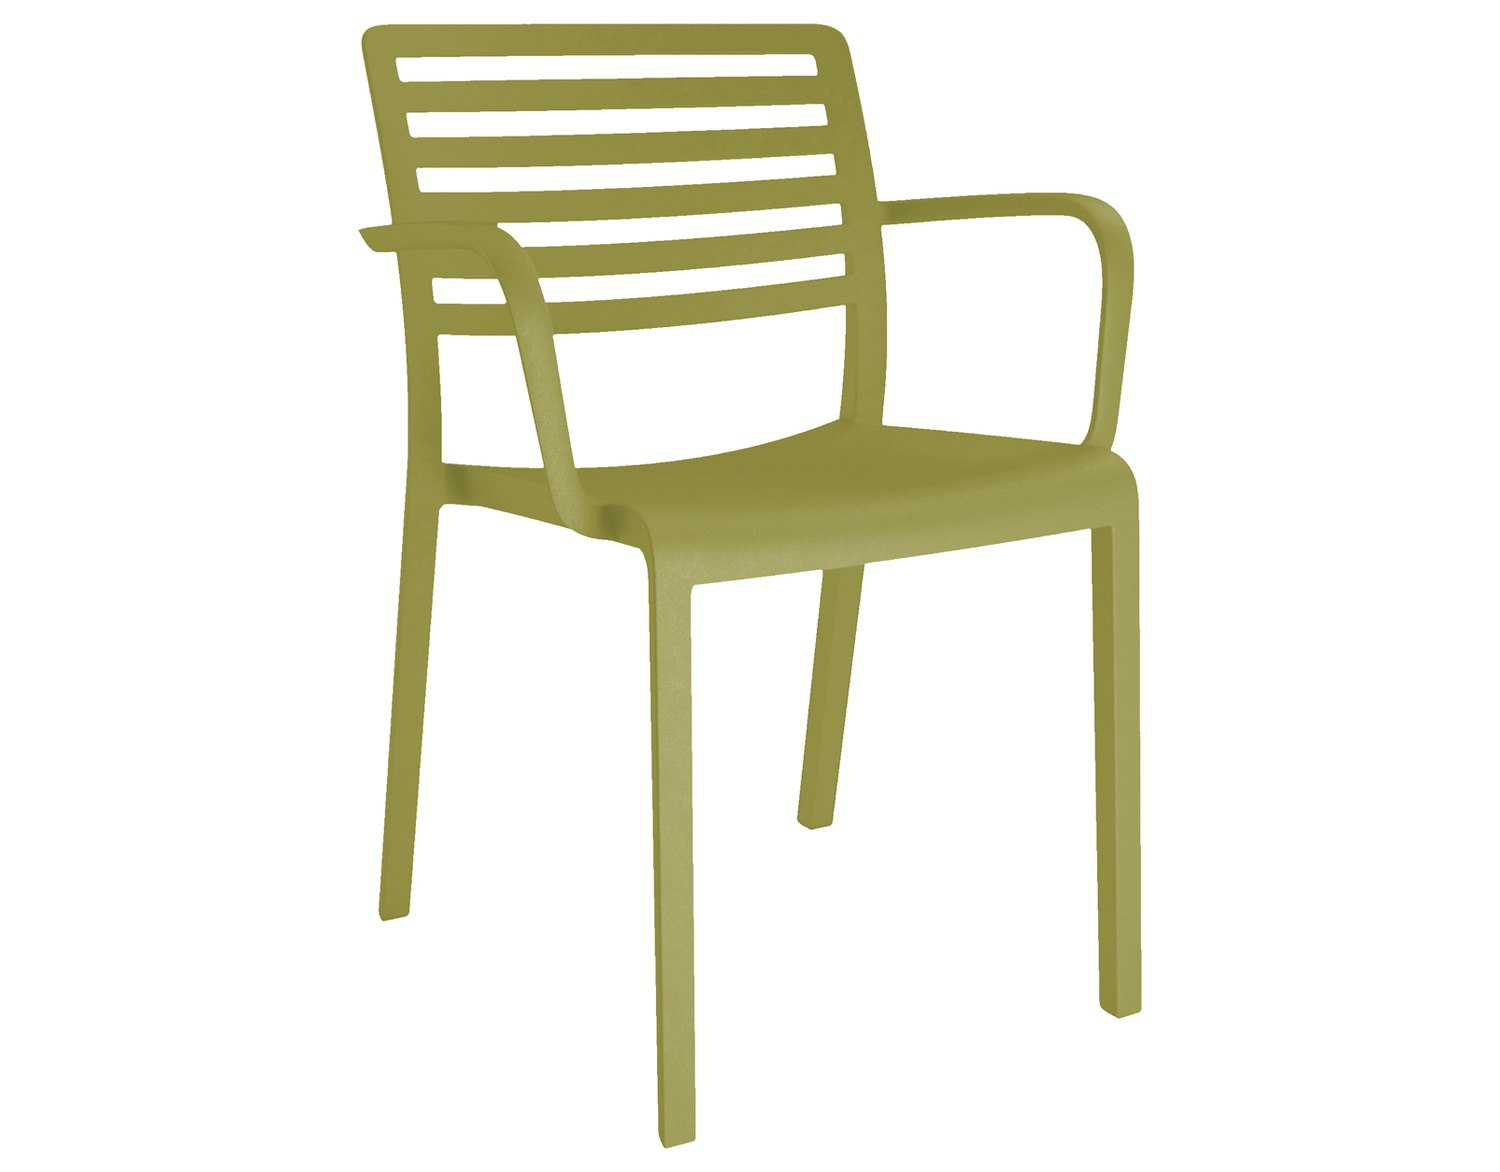 resol lama recycled plastic green olive arm chair  zoom